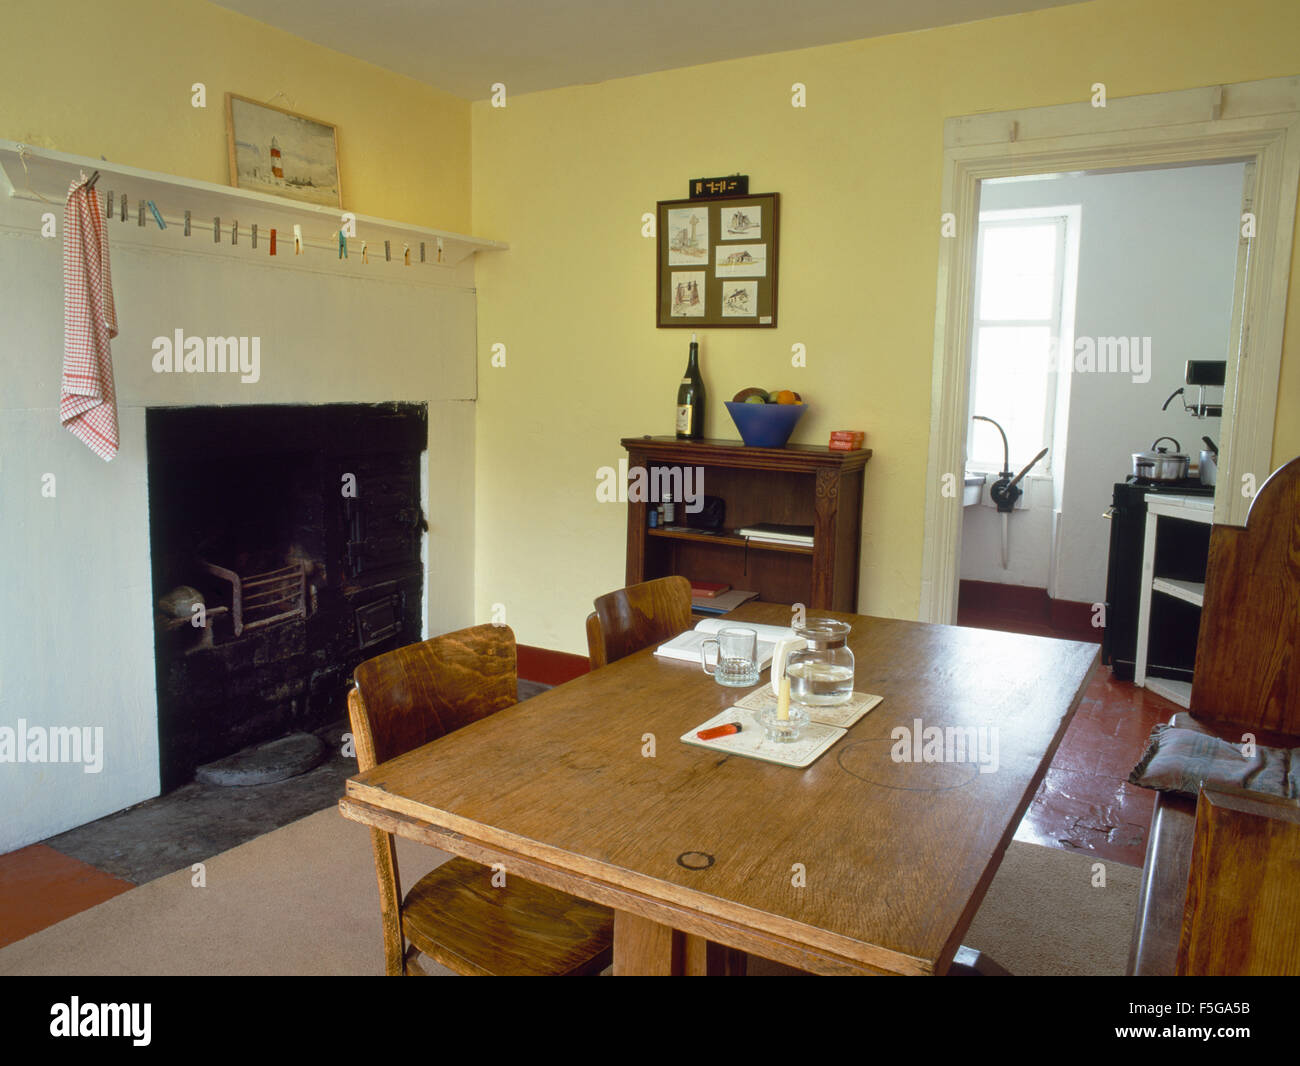 The Dining Room And Old Kitchen Fireplace With Victorian Range Carreg Fawr Bardsey Island North Wales UK Now Used As Holiday Cottage